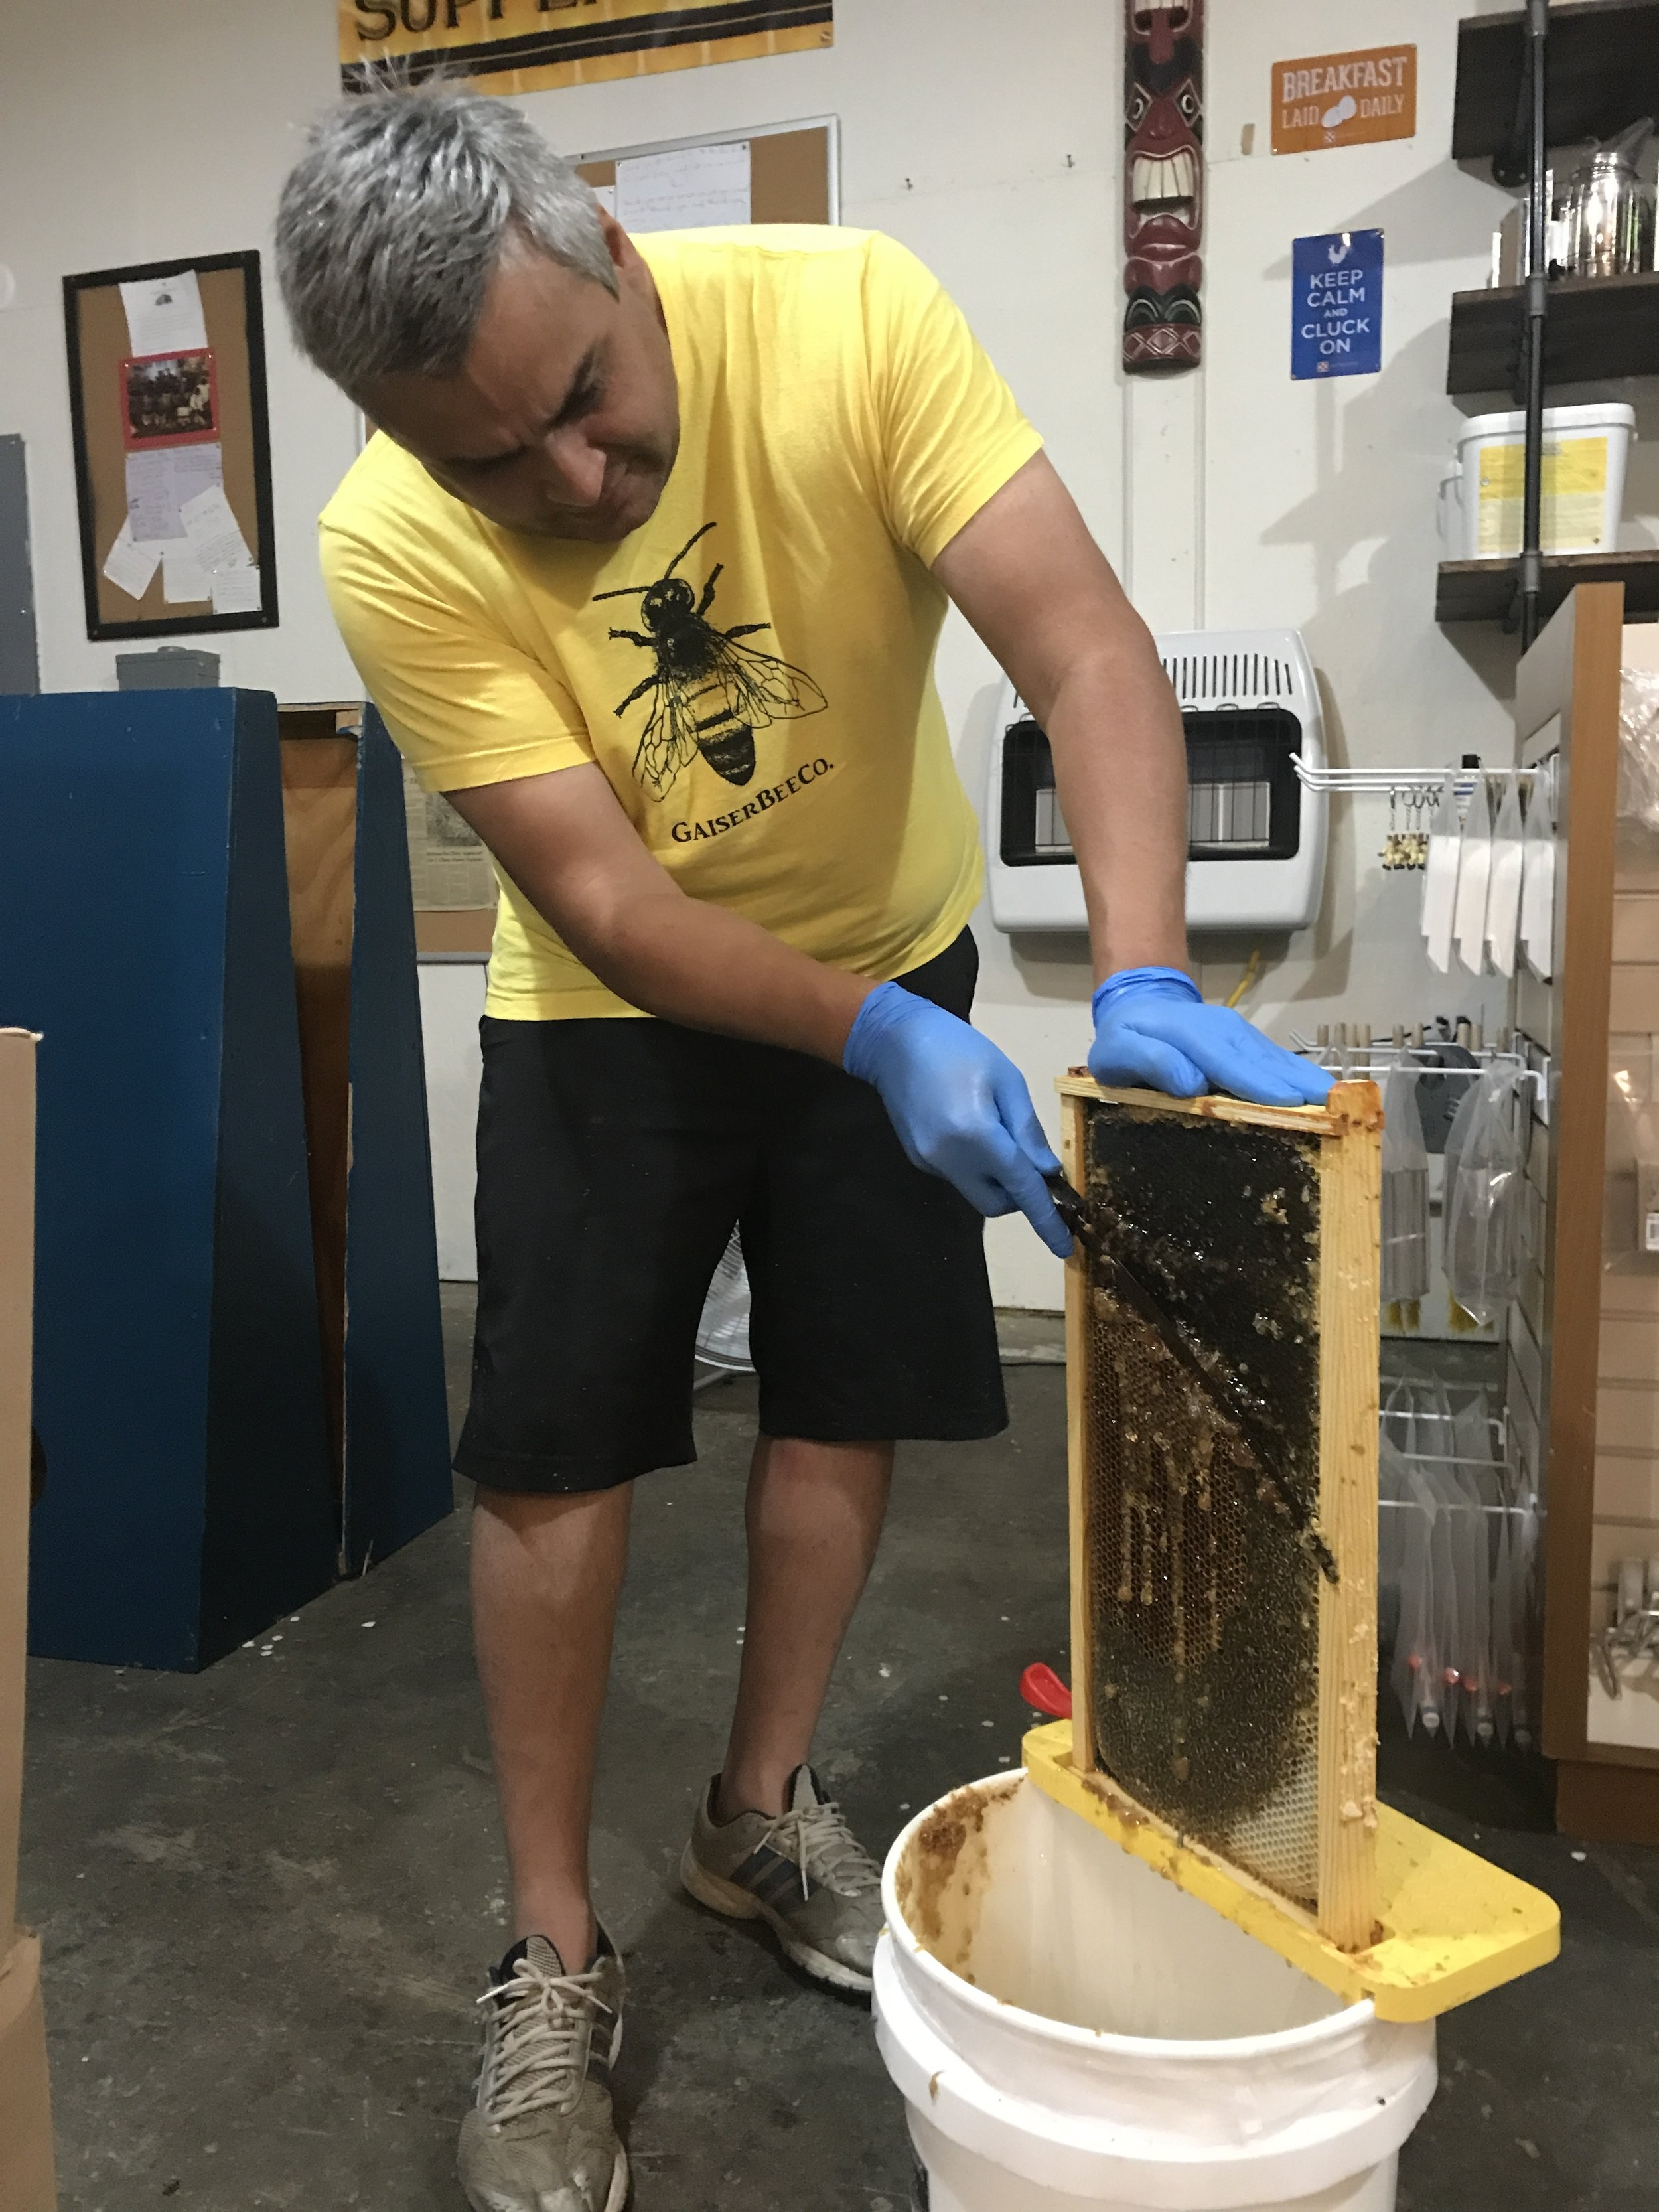 Extracting Honey Host A Hive Gaiser Bee Co.